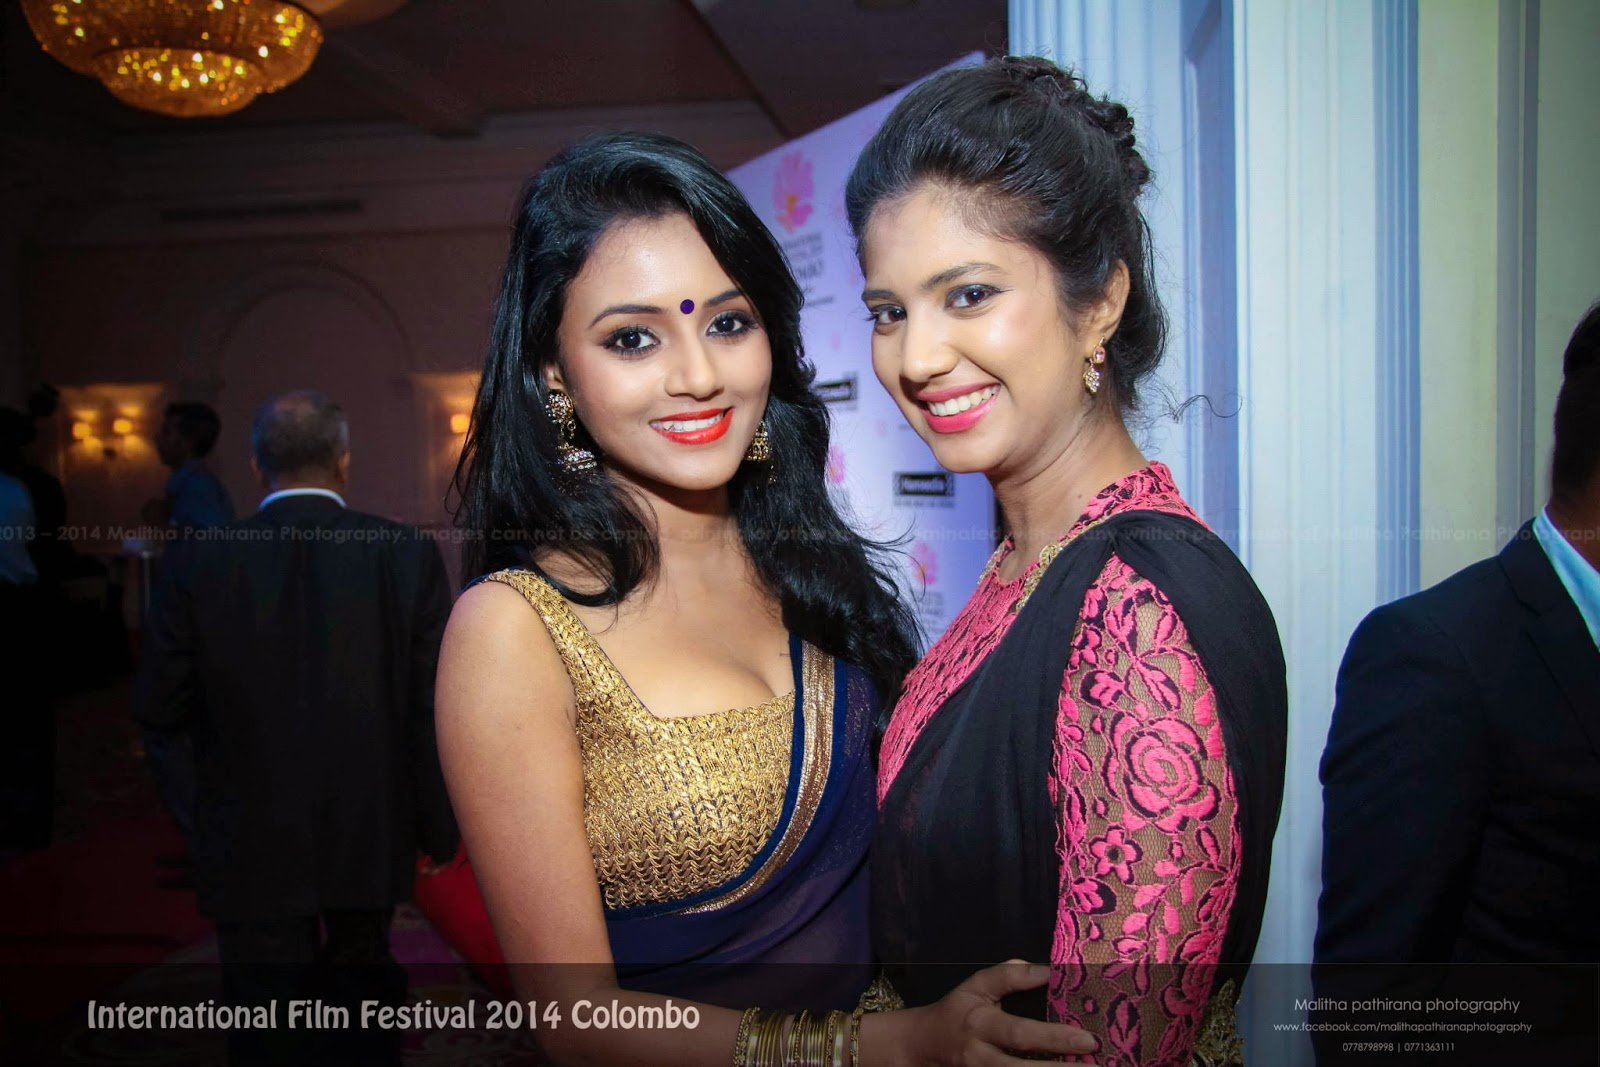 dinakshi and senali